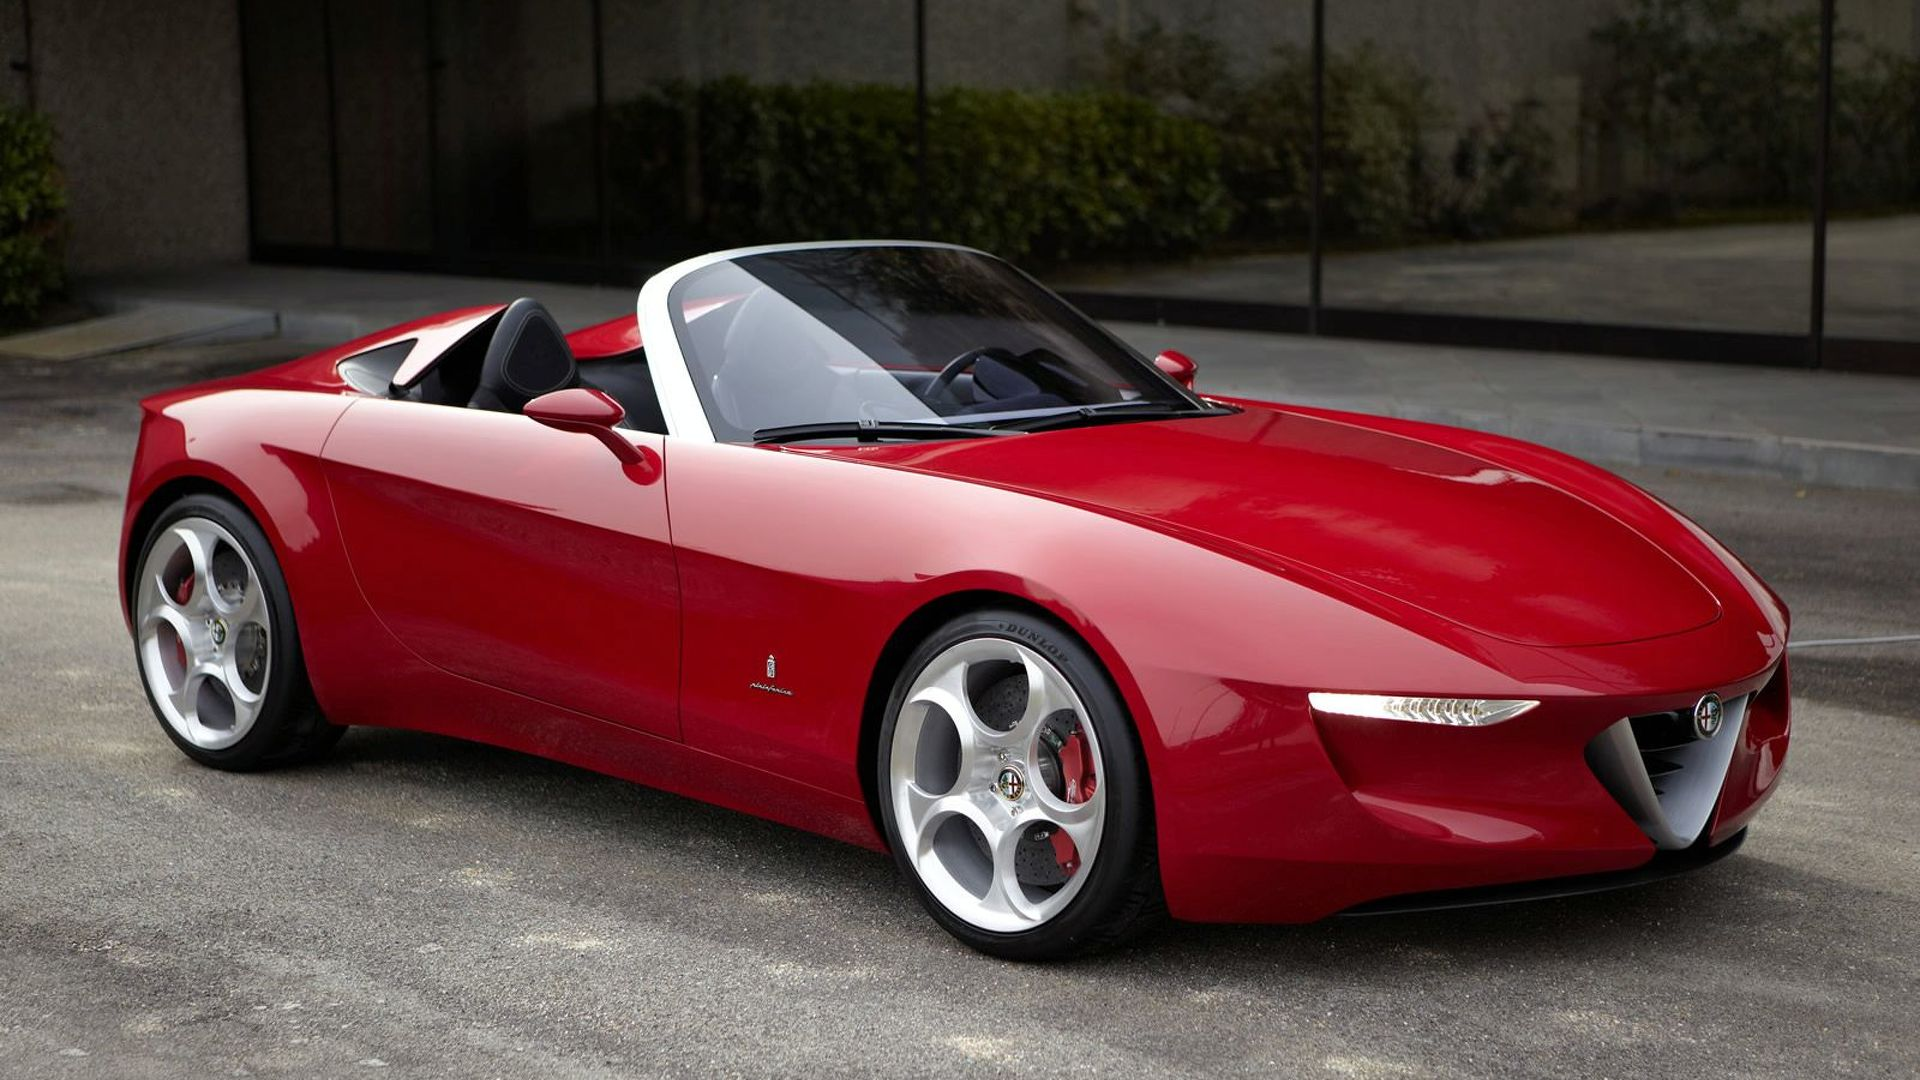 Alfa Romeo Planning New Spider Model To Rival MX - Alfa romeo spider new model